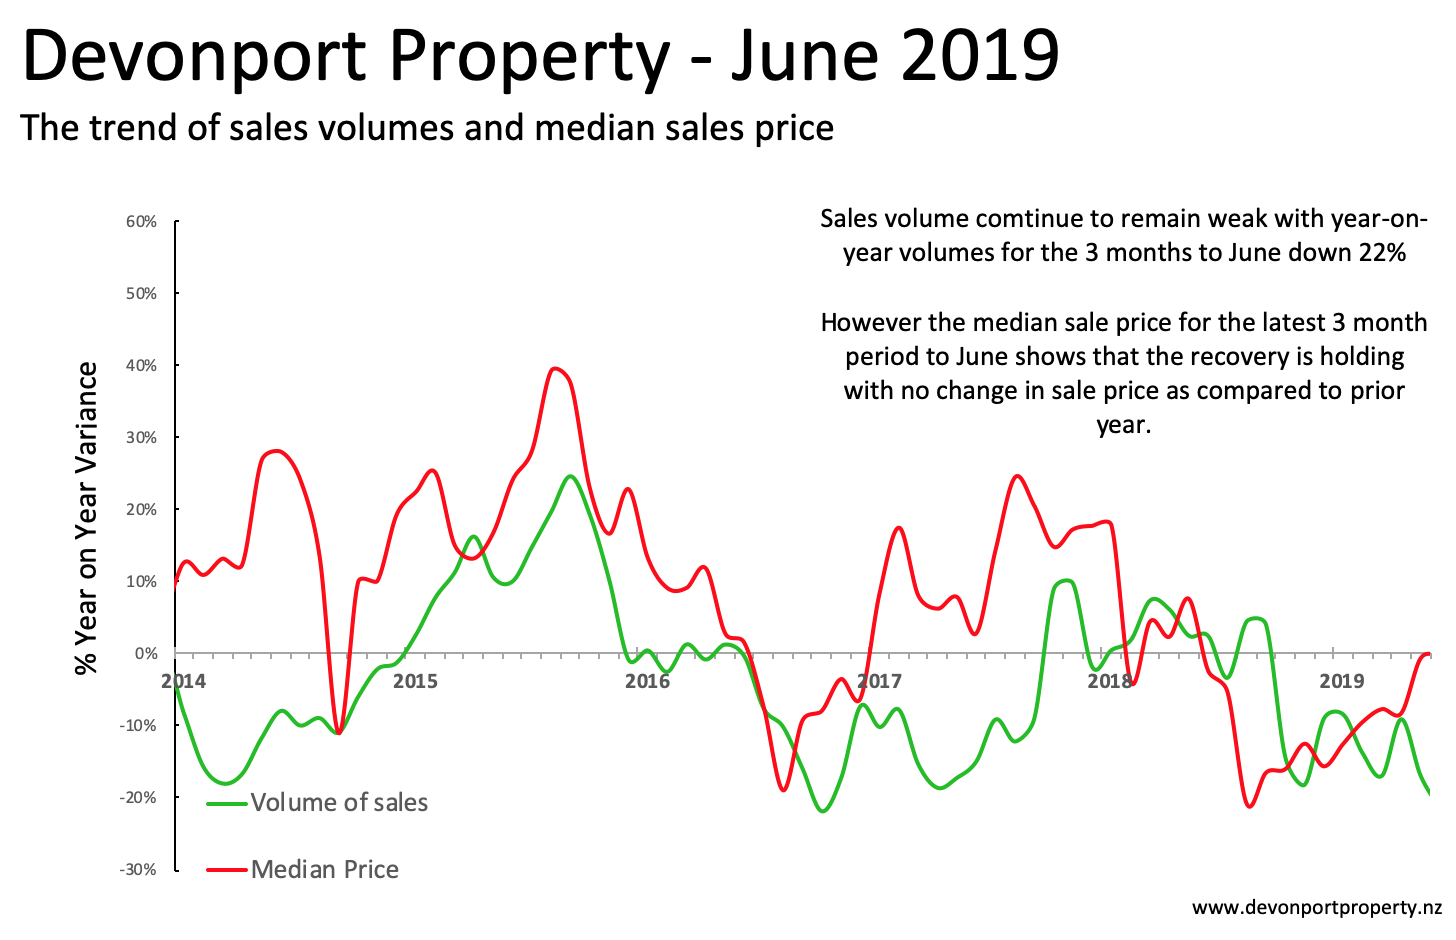 Devonport Property June 2019 variaince of sales and price 3 MMA.png